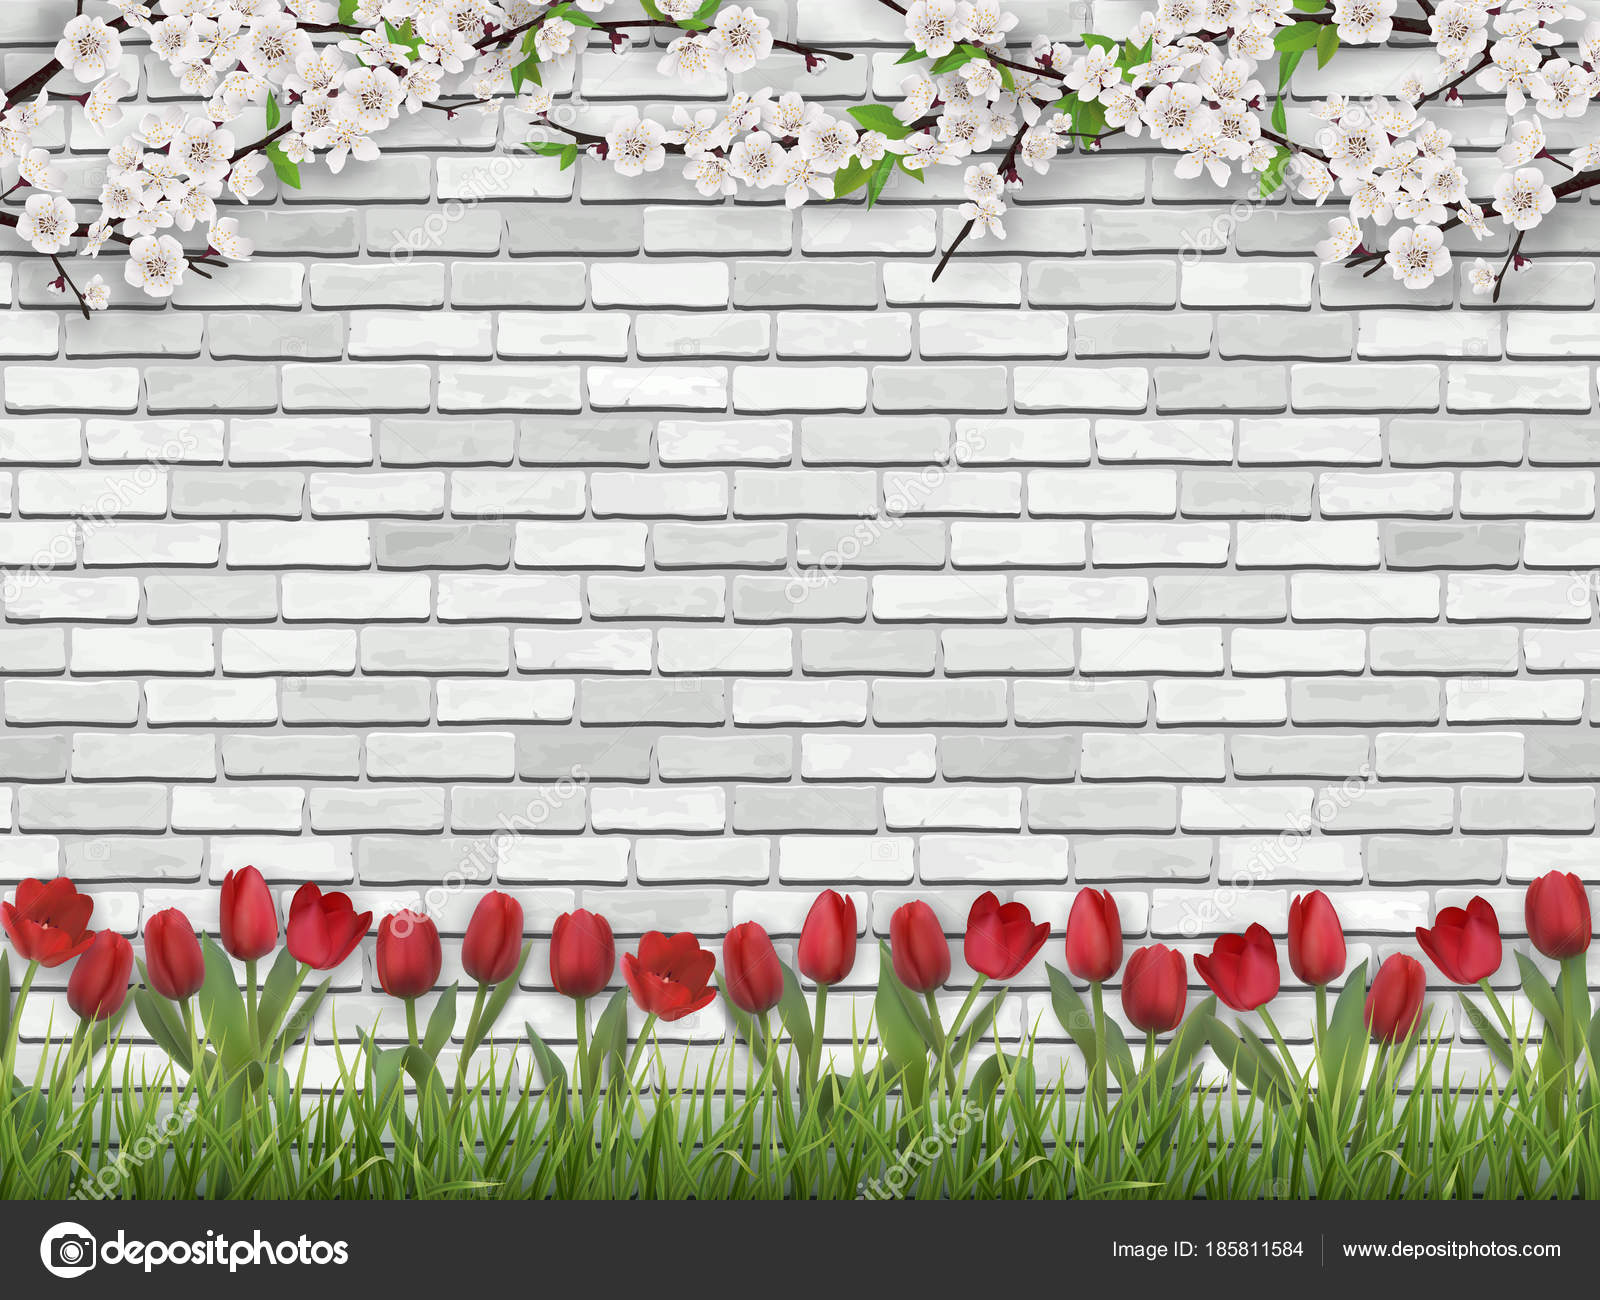 Tulips Tree Branch Grass White Brick Wall Vector Image By Belikovand Vector Stock 185811584